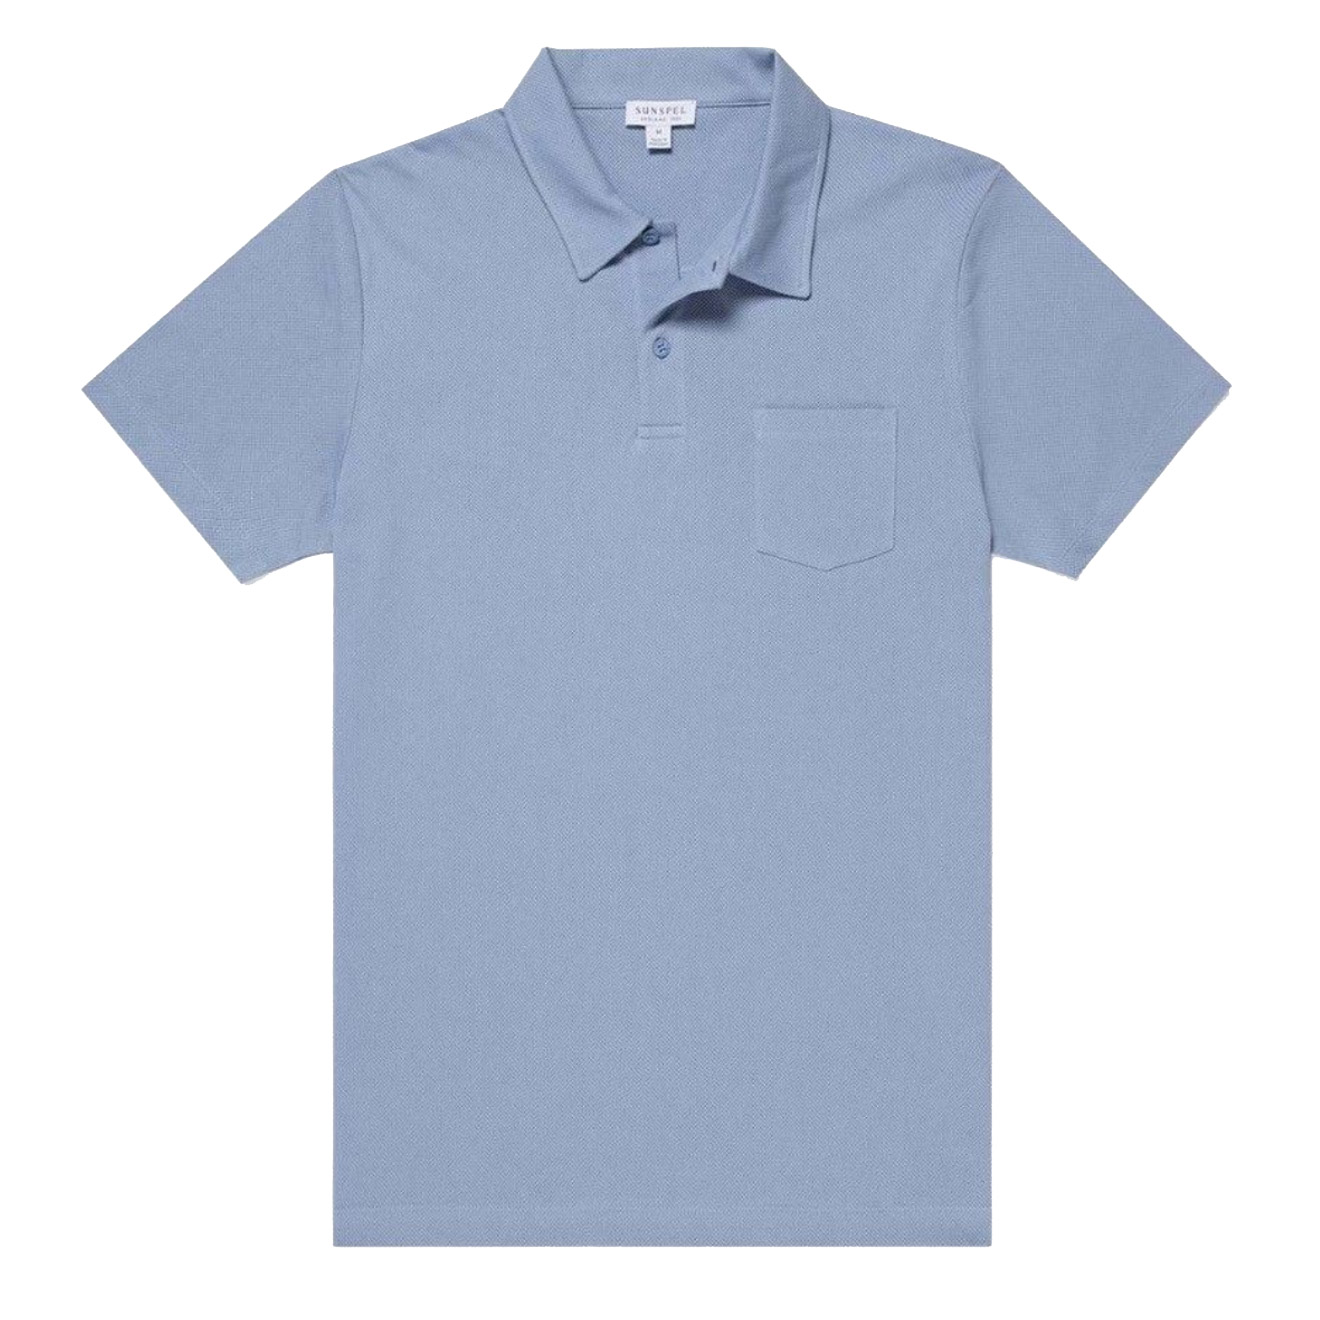 Sunspel RIVIERA S/S POLO WASHED DENIM